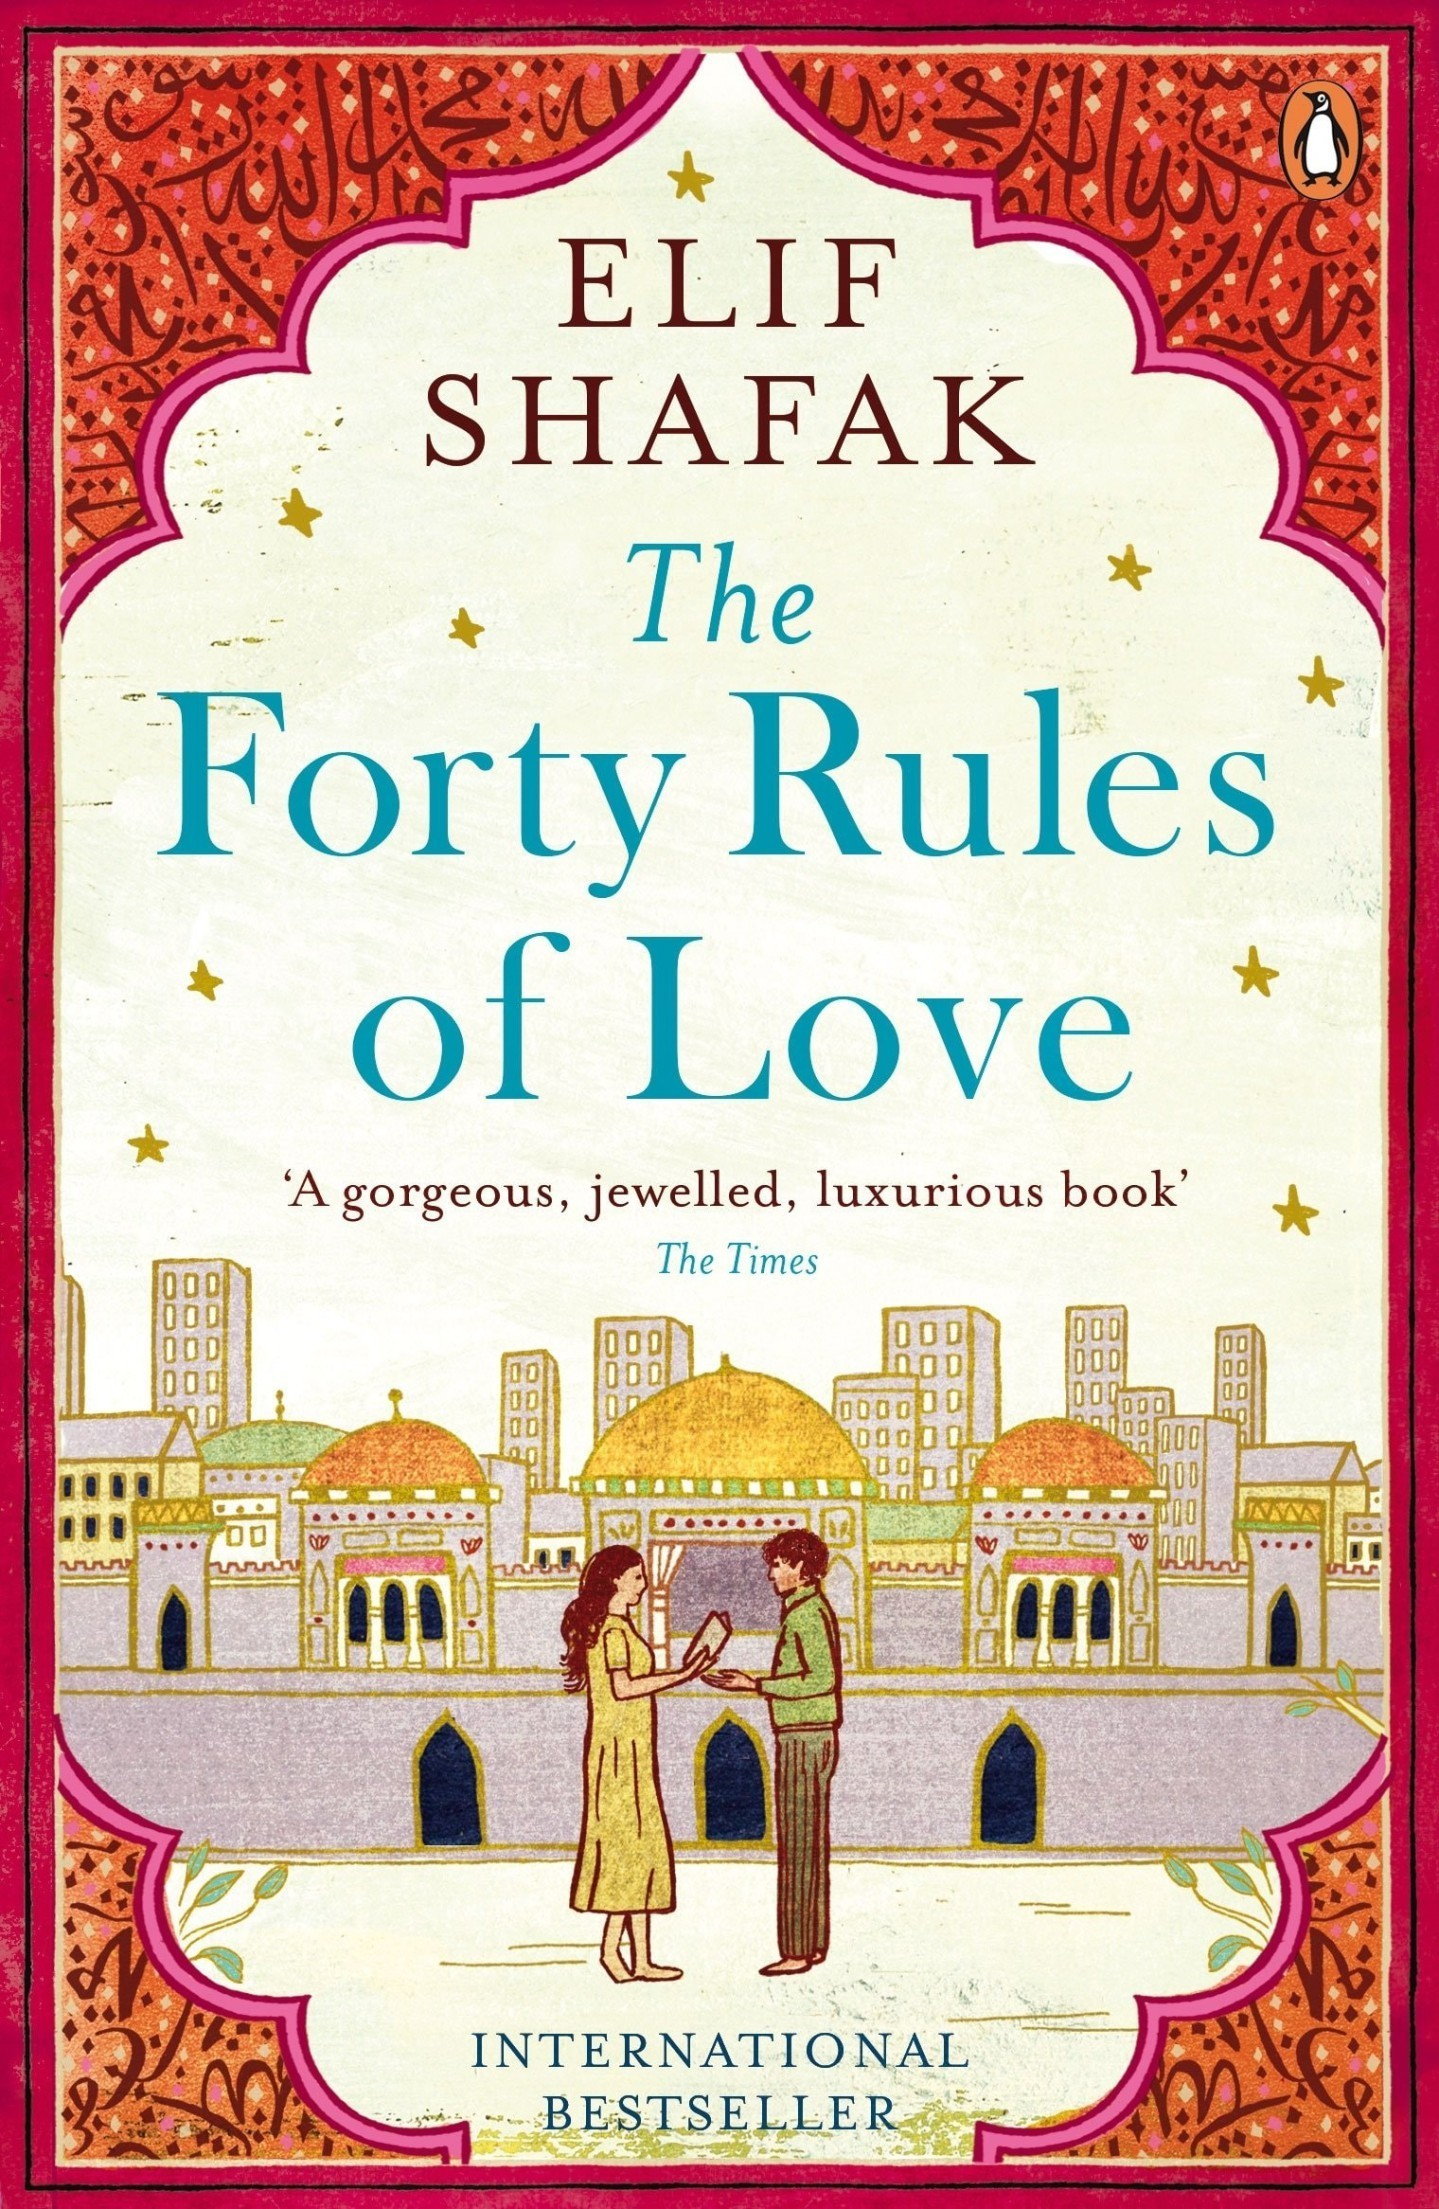 Elif Shafak's novel The Forty Rules of Love